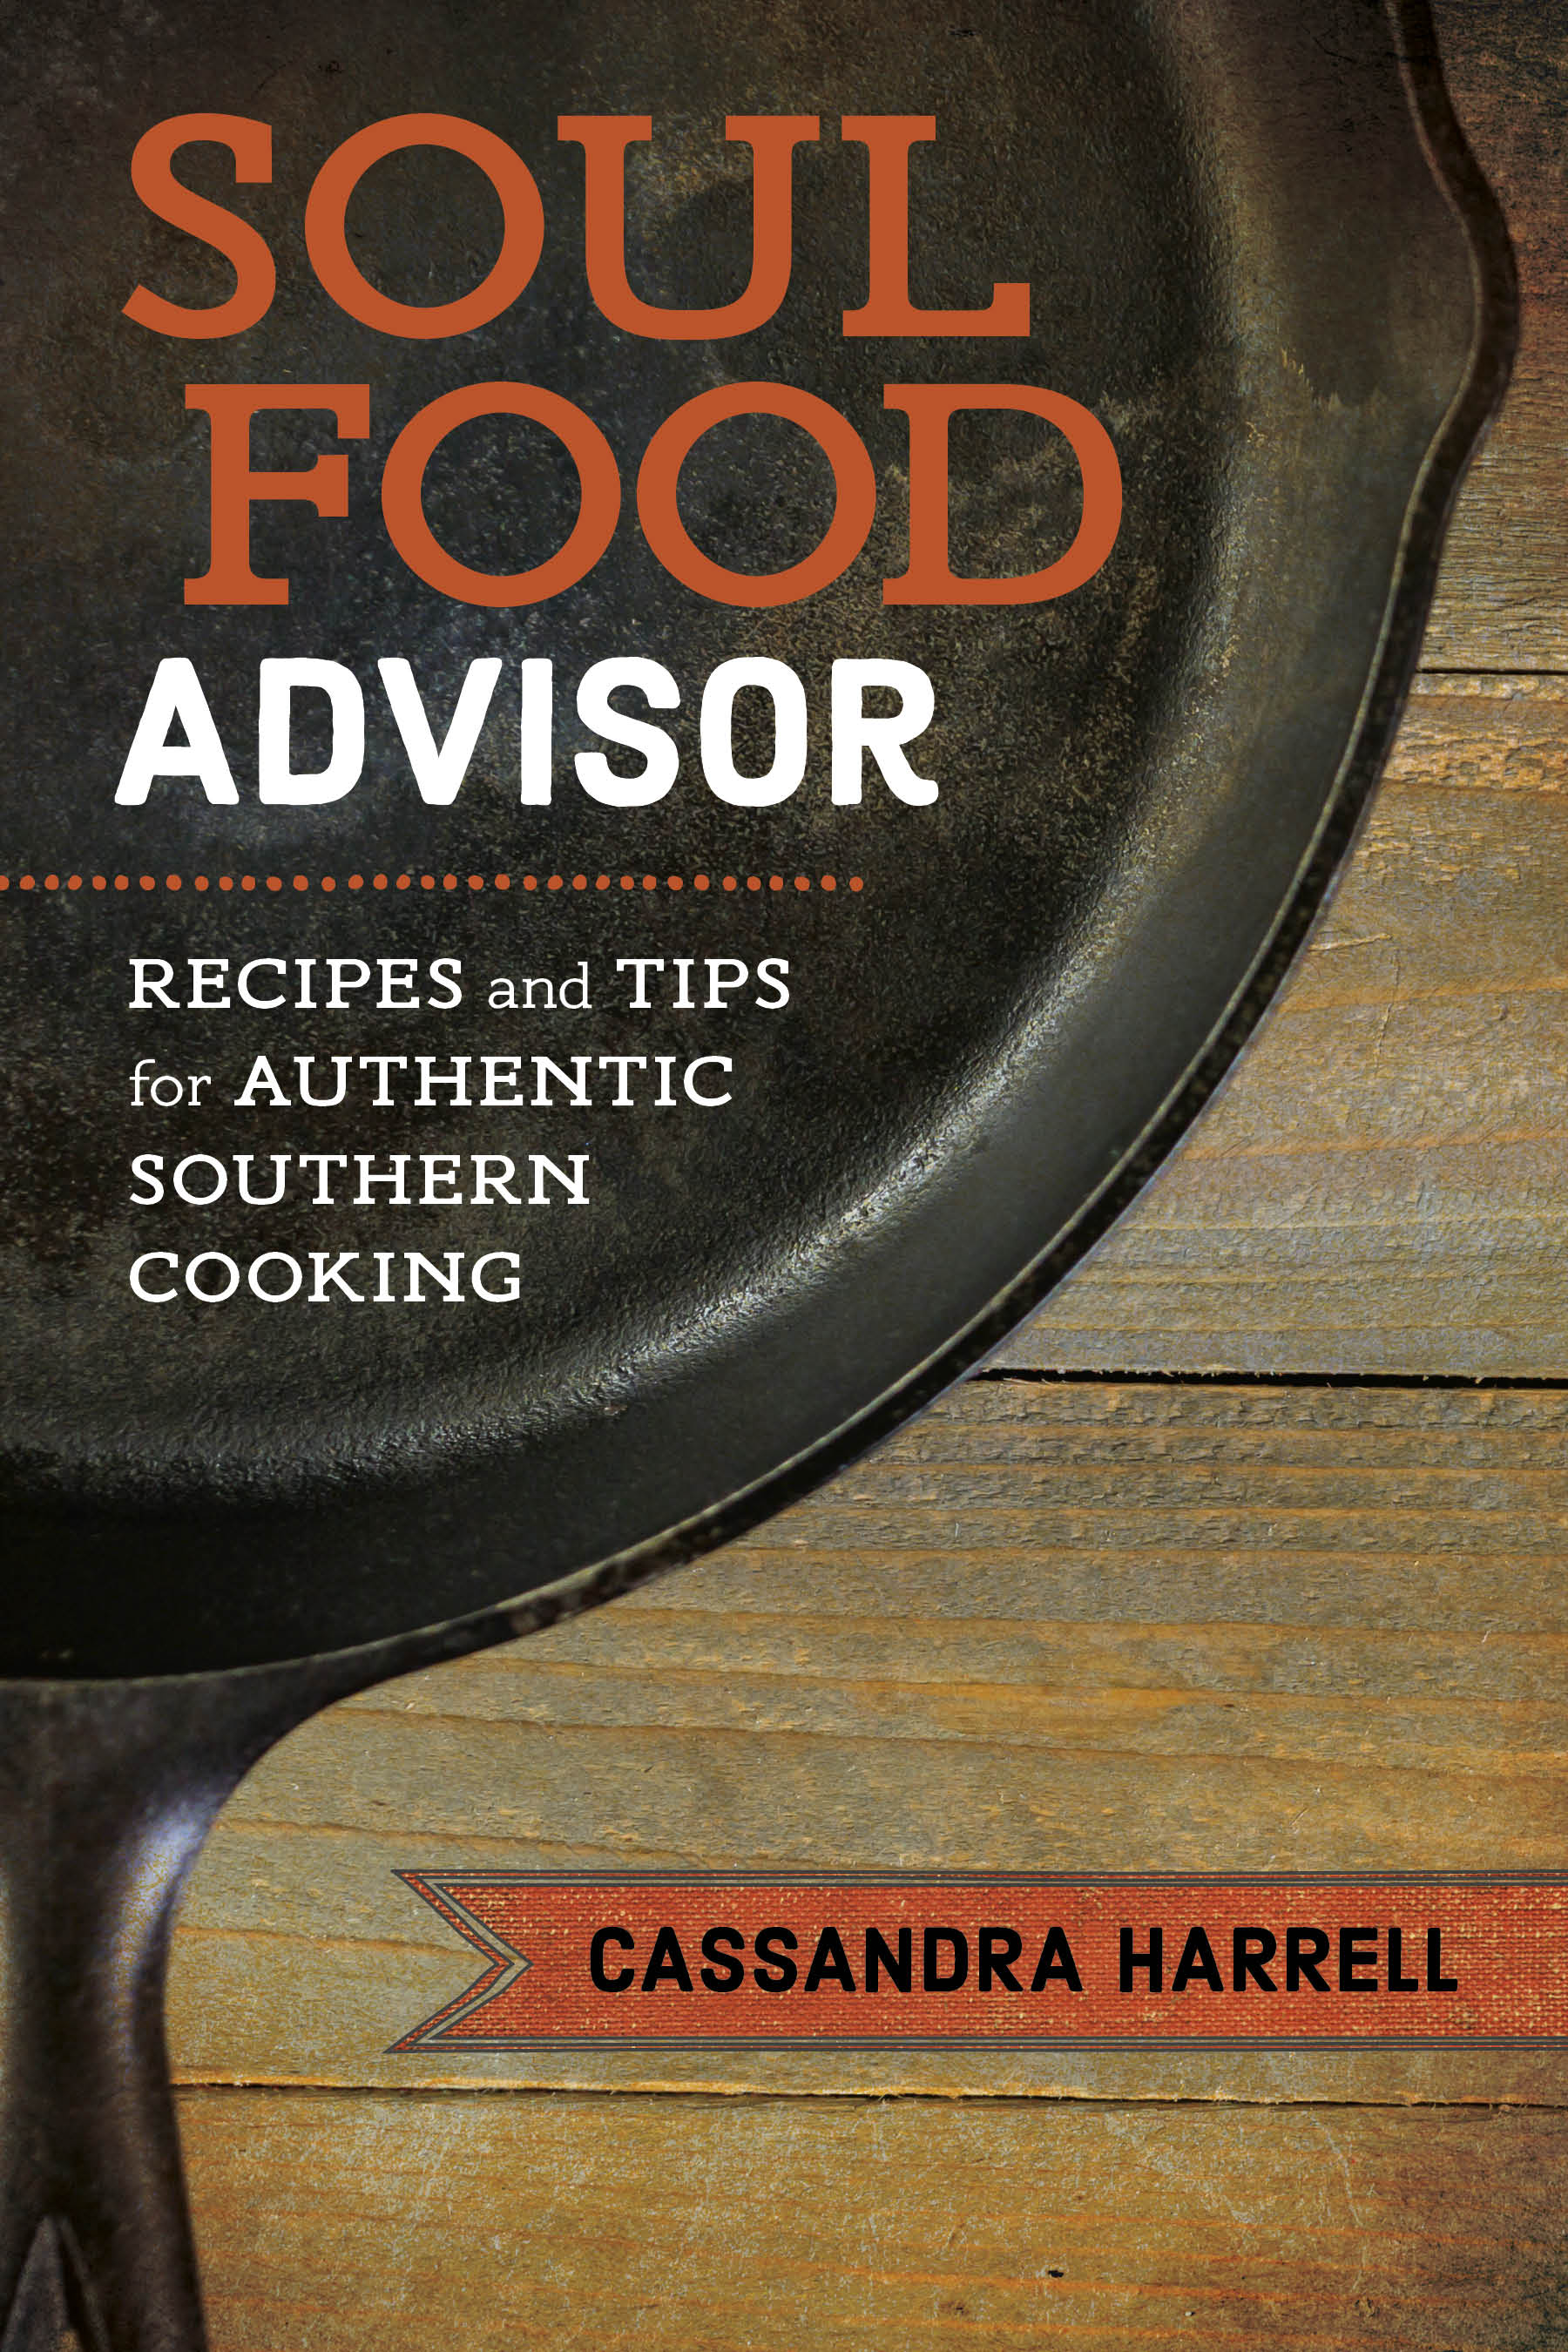 Book review soul food advisor recipes and tips for authentic book cover courtesy of isupress forumfinder Image collections